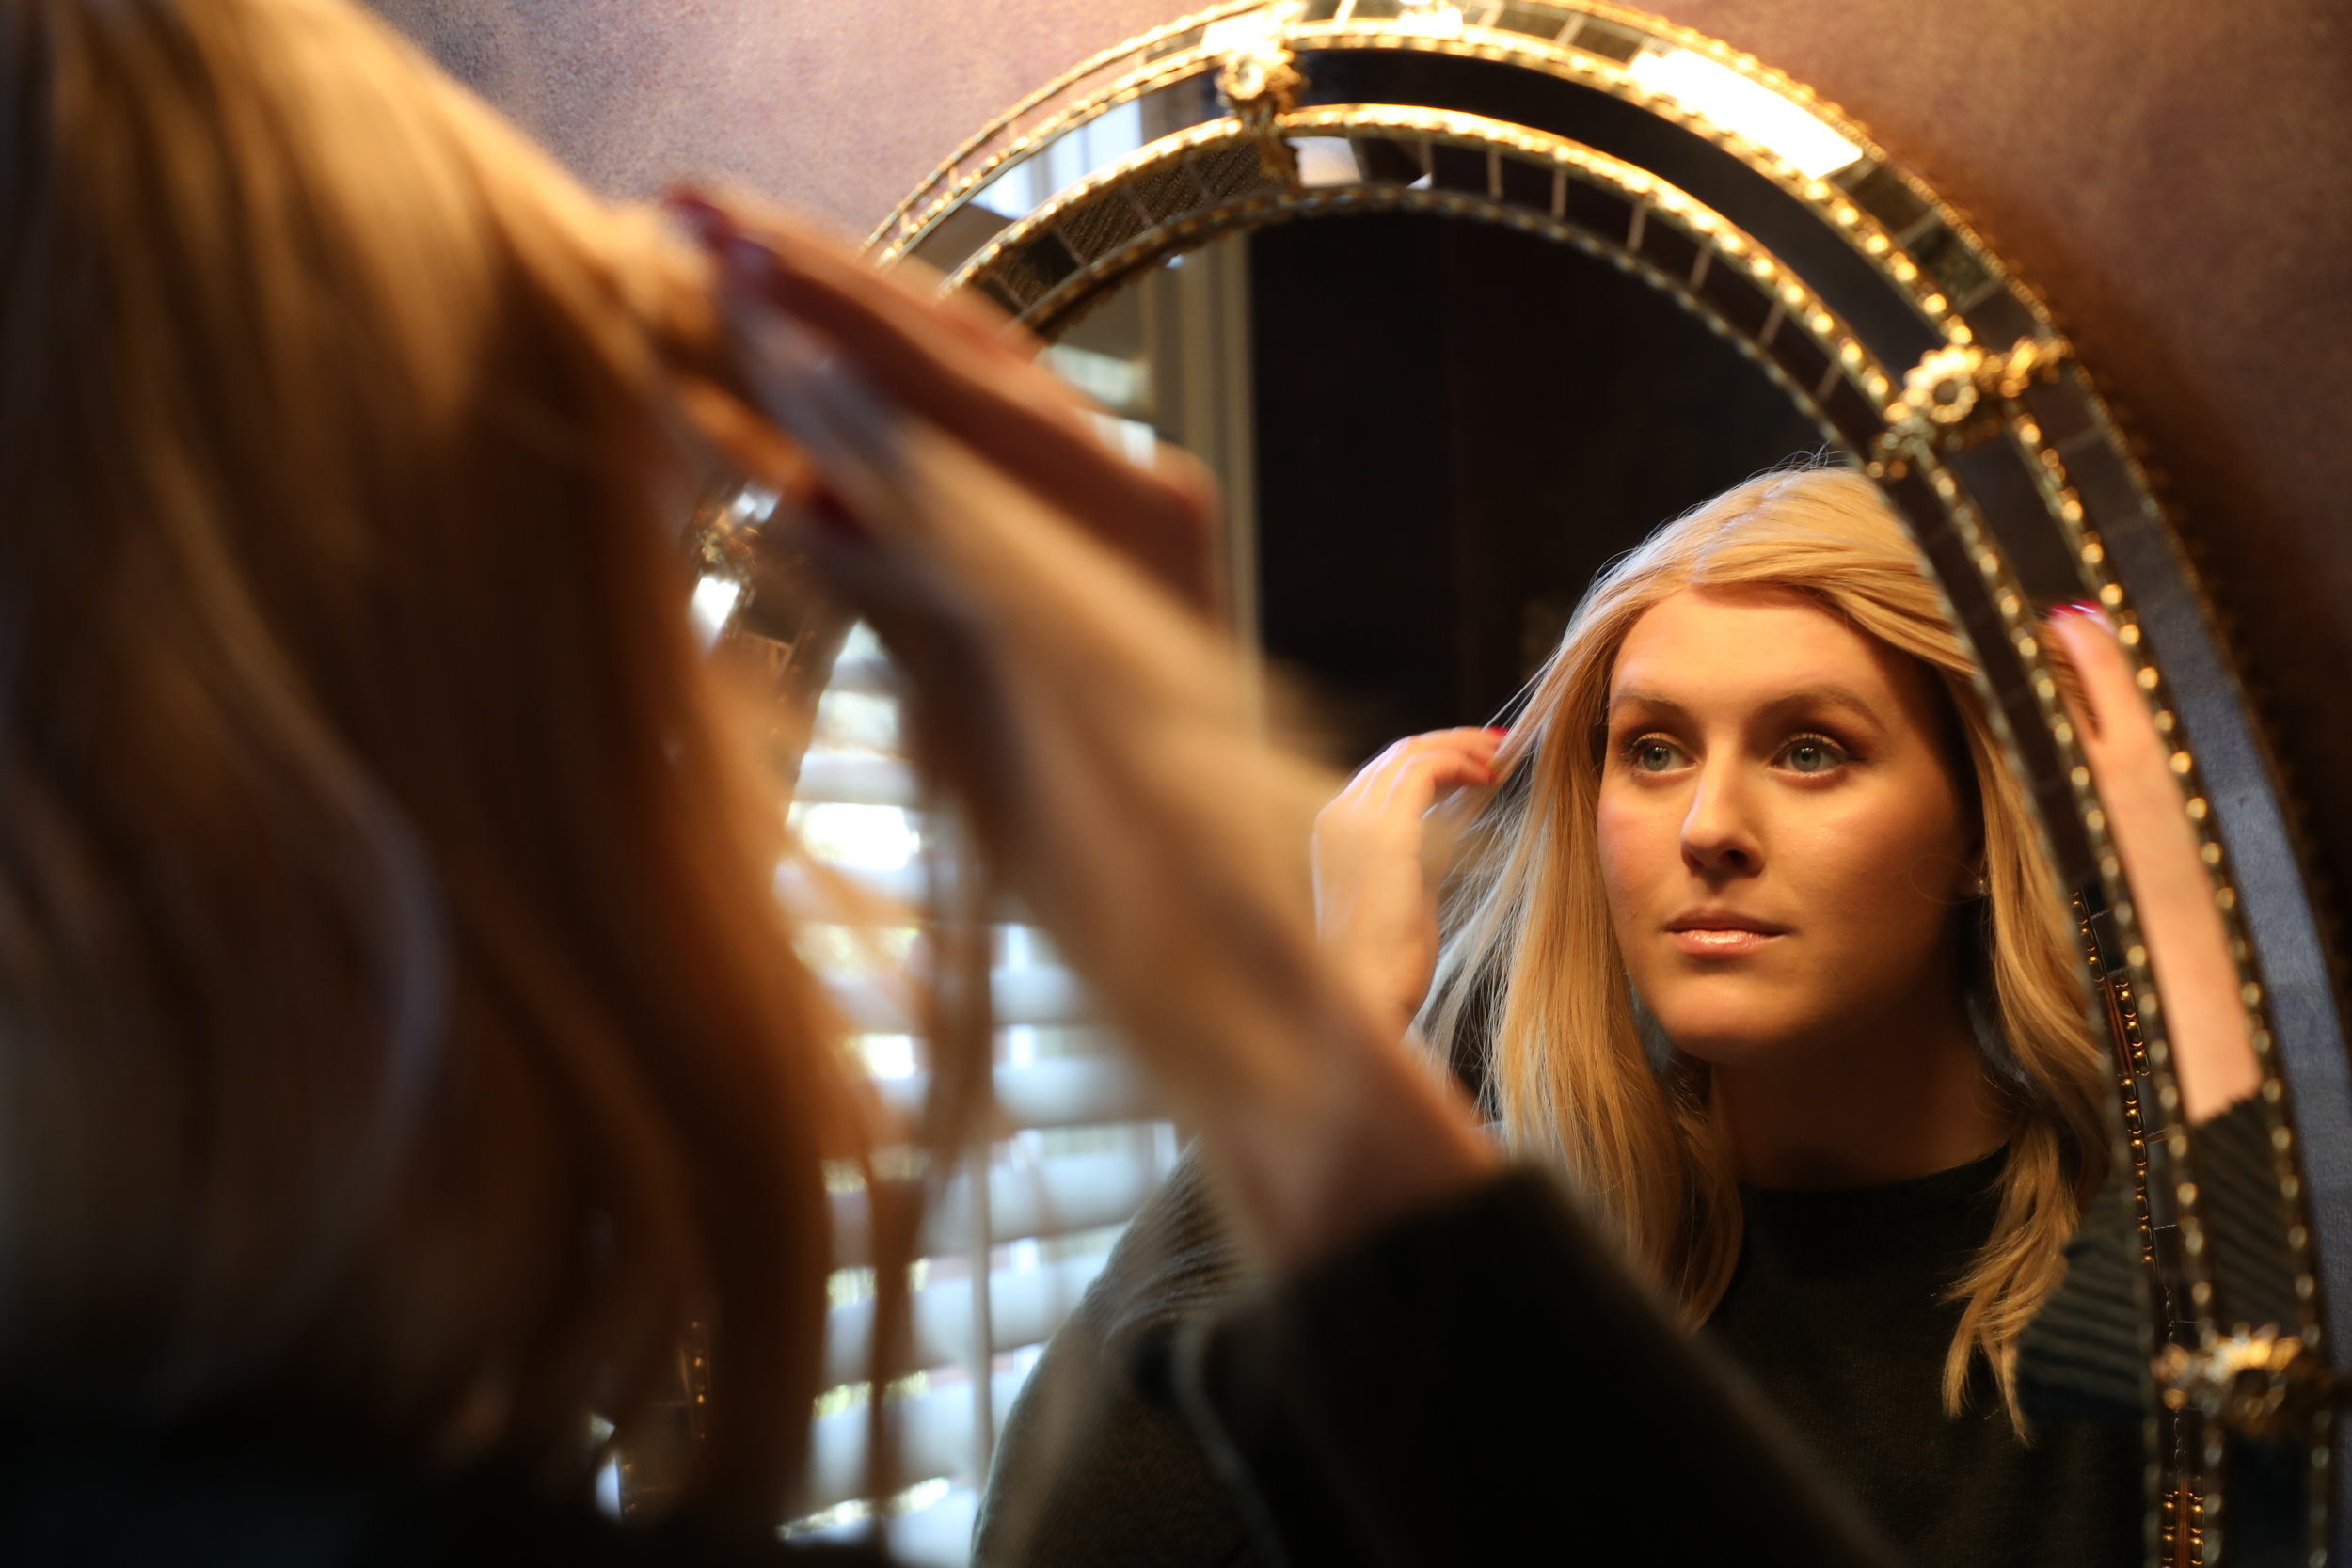 "Nicole Cummings looks herself in the mirror after wearing her wig on March 16, 2019, at her home in Kansas City, Missouri. Cummings was diagnosed with Stage 4 Hodgkin's Lymphoma at the age of 20. She began showing hair loss several weeks after treatment. Cummings said it was sad to see that coming at first, but she now views every hair strand as a defeated cancer cell. ""It means that the medicine is working. I'm getting rid of this cancer and it's not going to define me,"" she said."